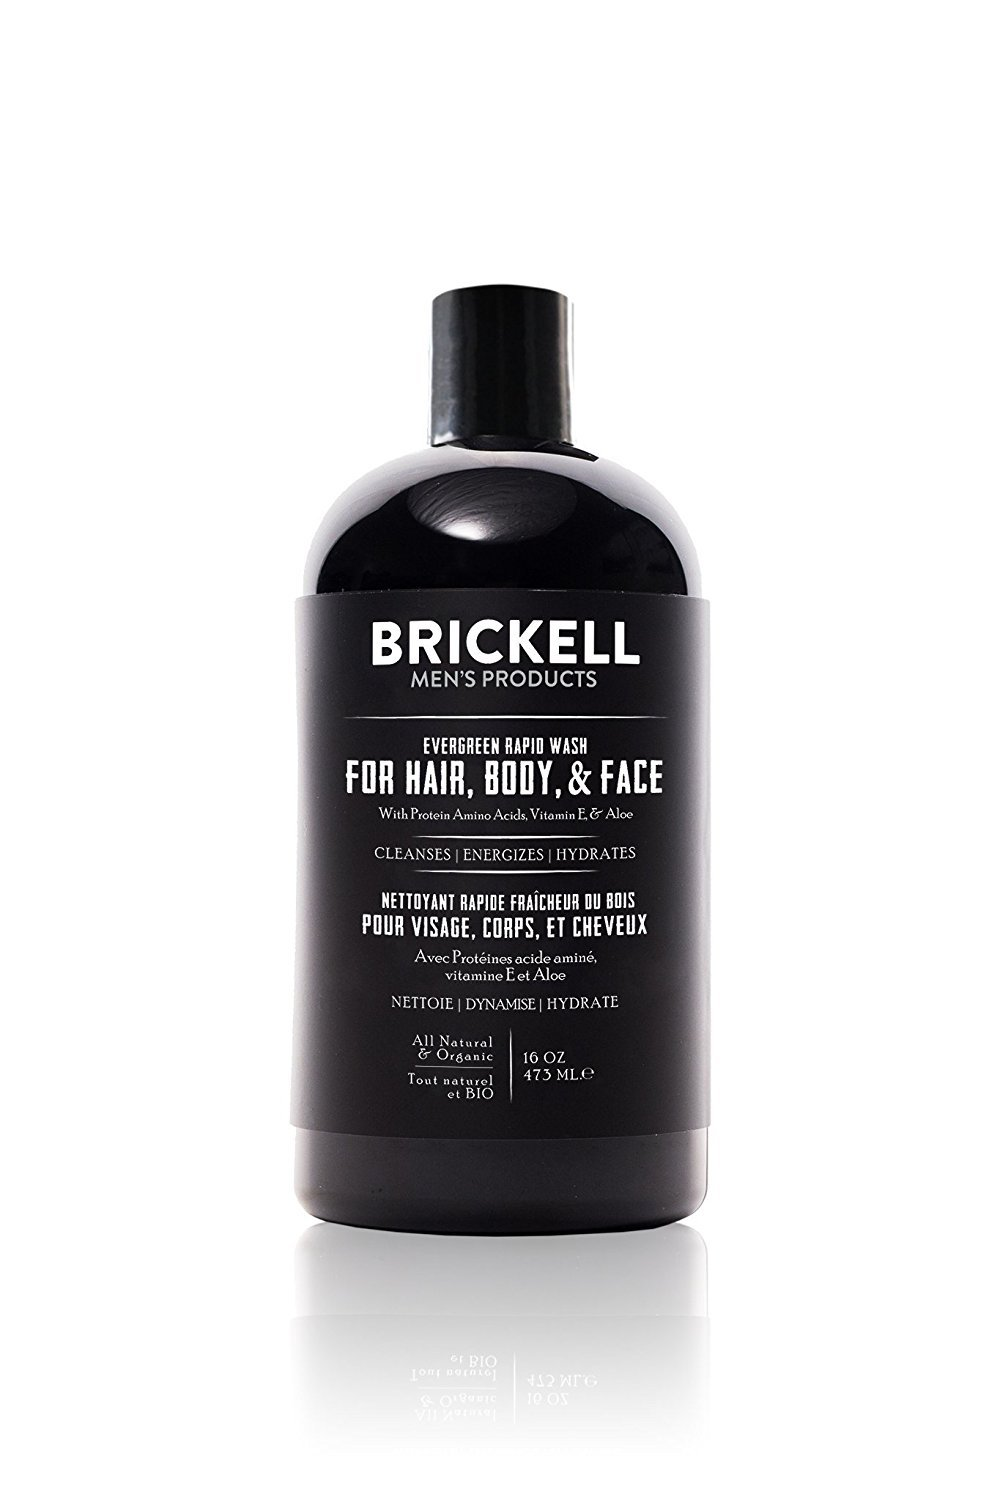 Brickell Men's Rapid Wash, Natural and Organic 3 in 1 Body Wash Gel for Men, 16 Ounce, Evergreen Scent